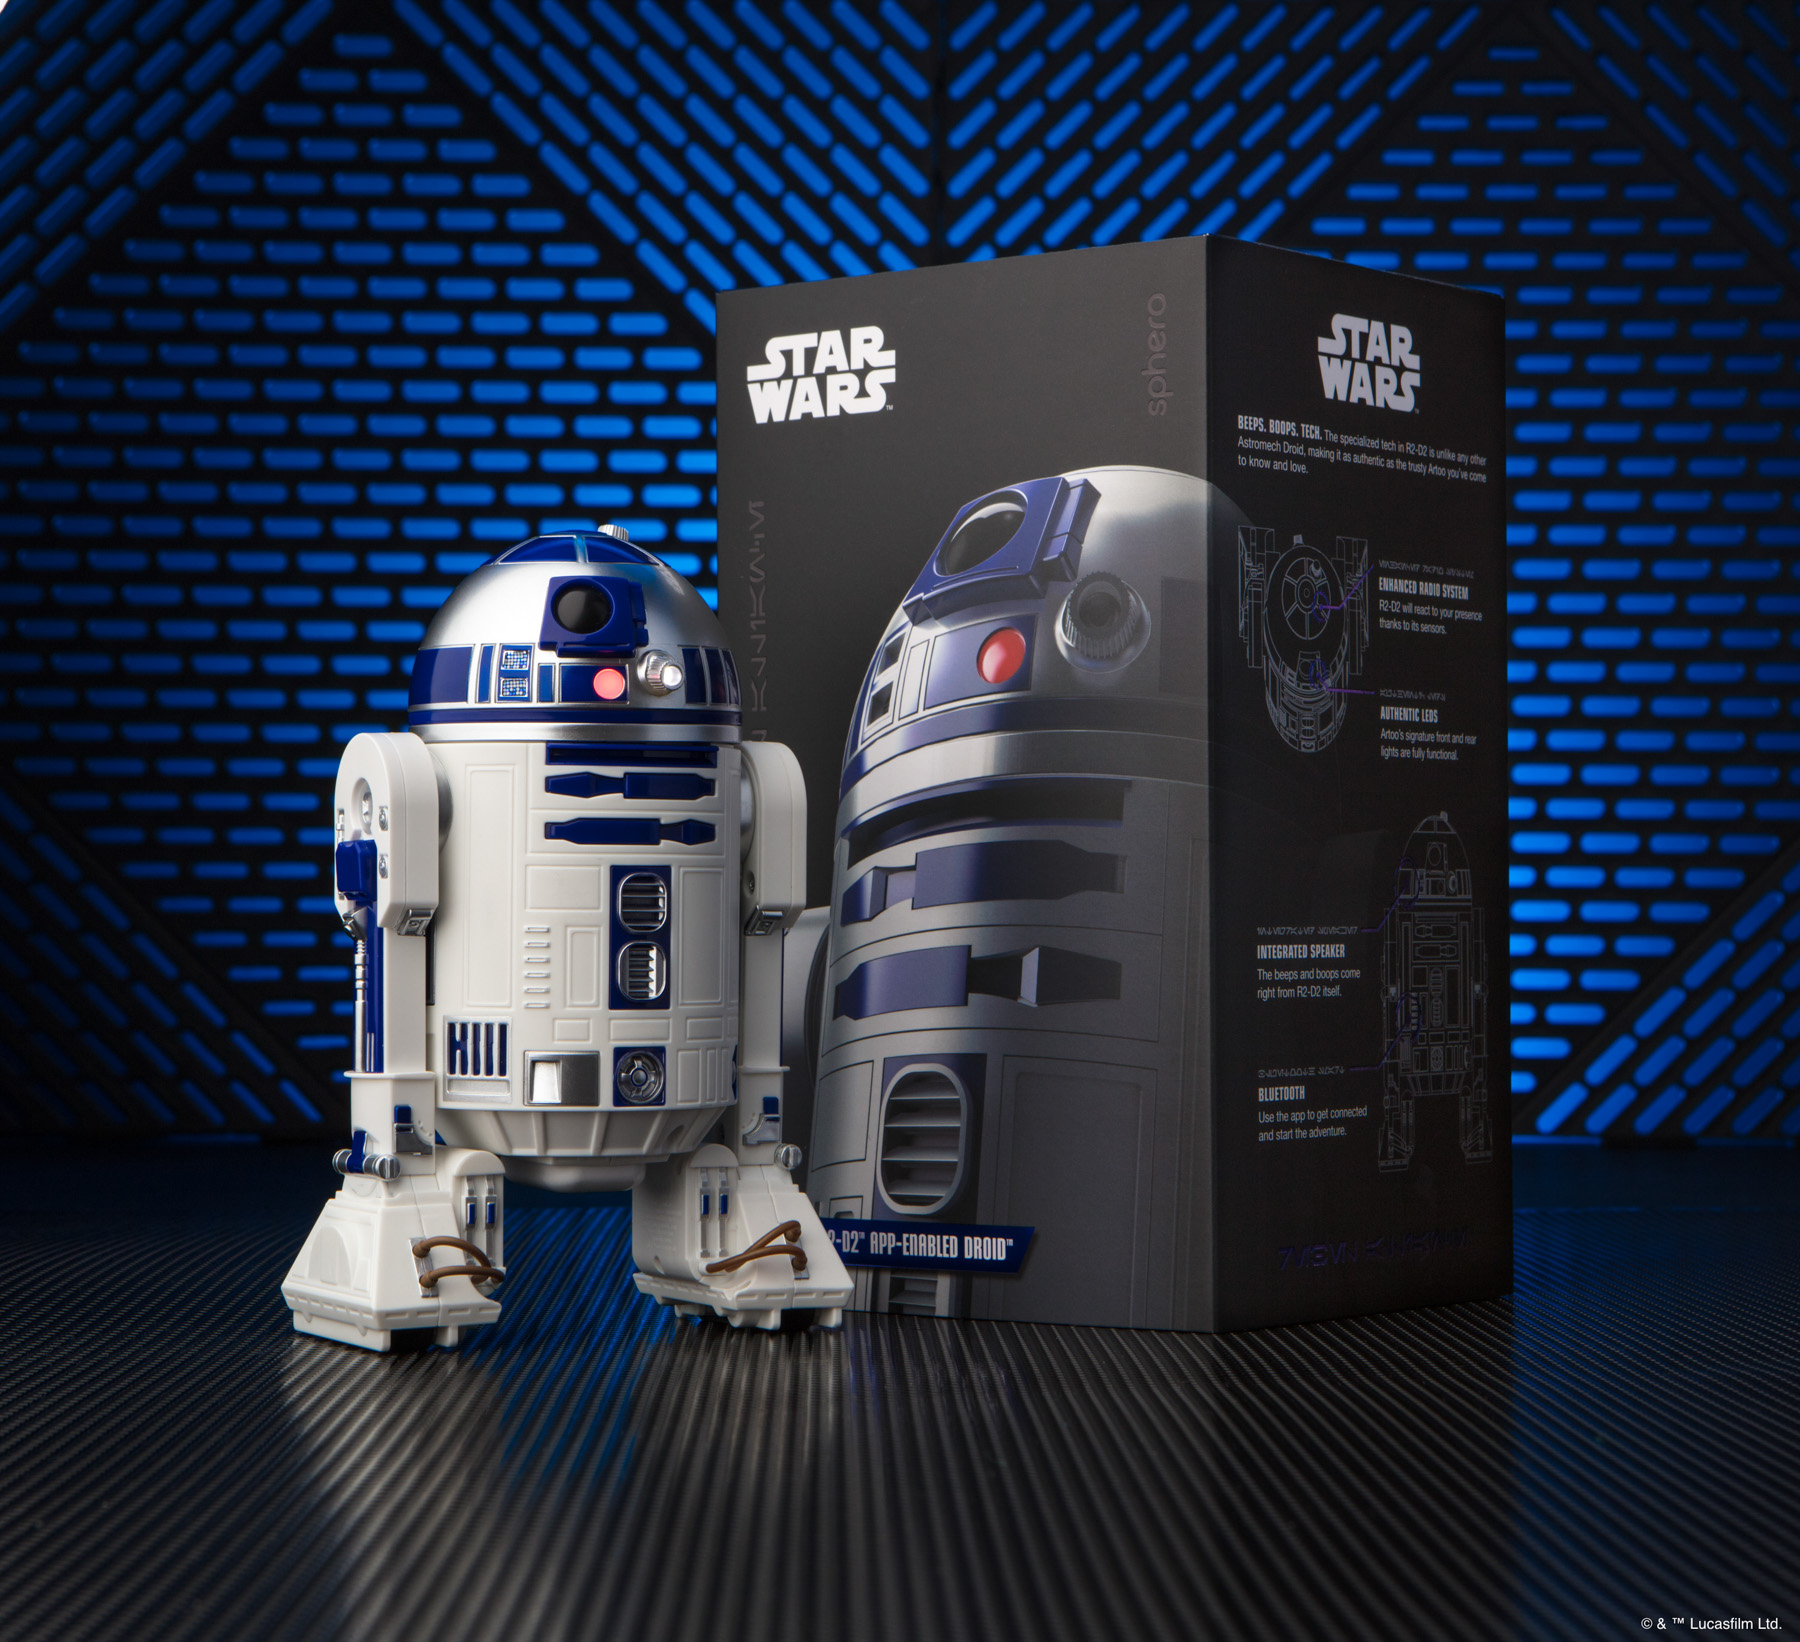 Sphero R2-D2 Star Wars toy and packaging with blue background.